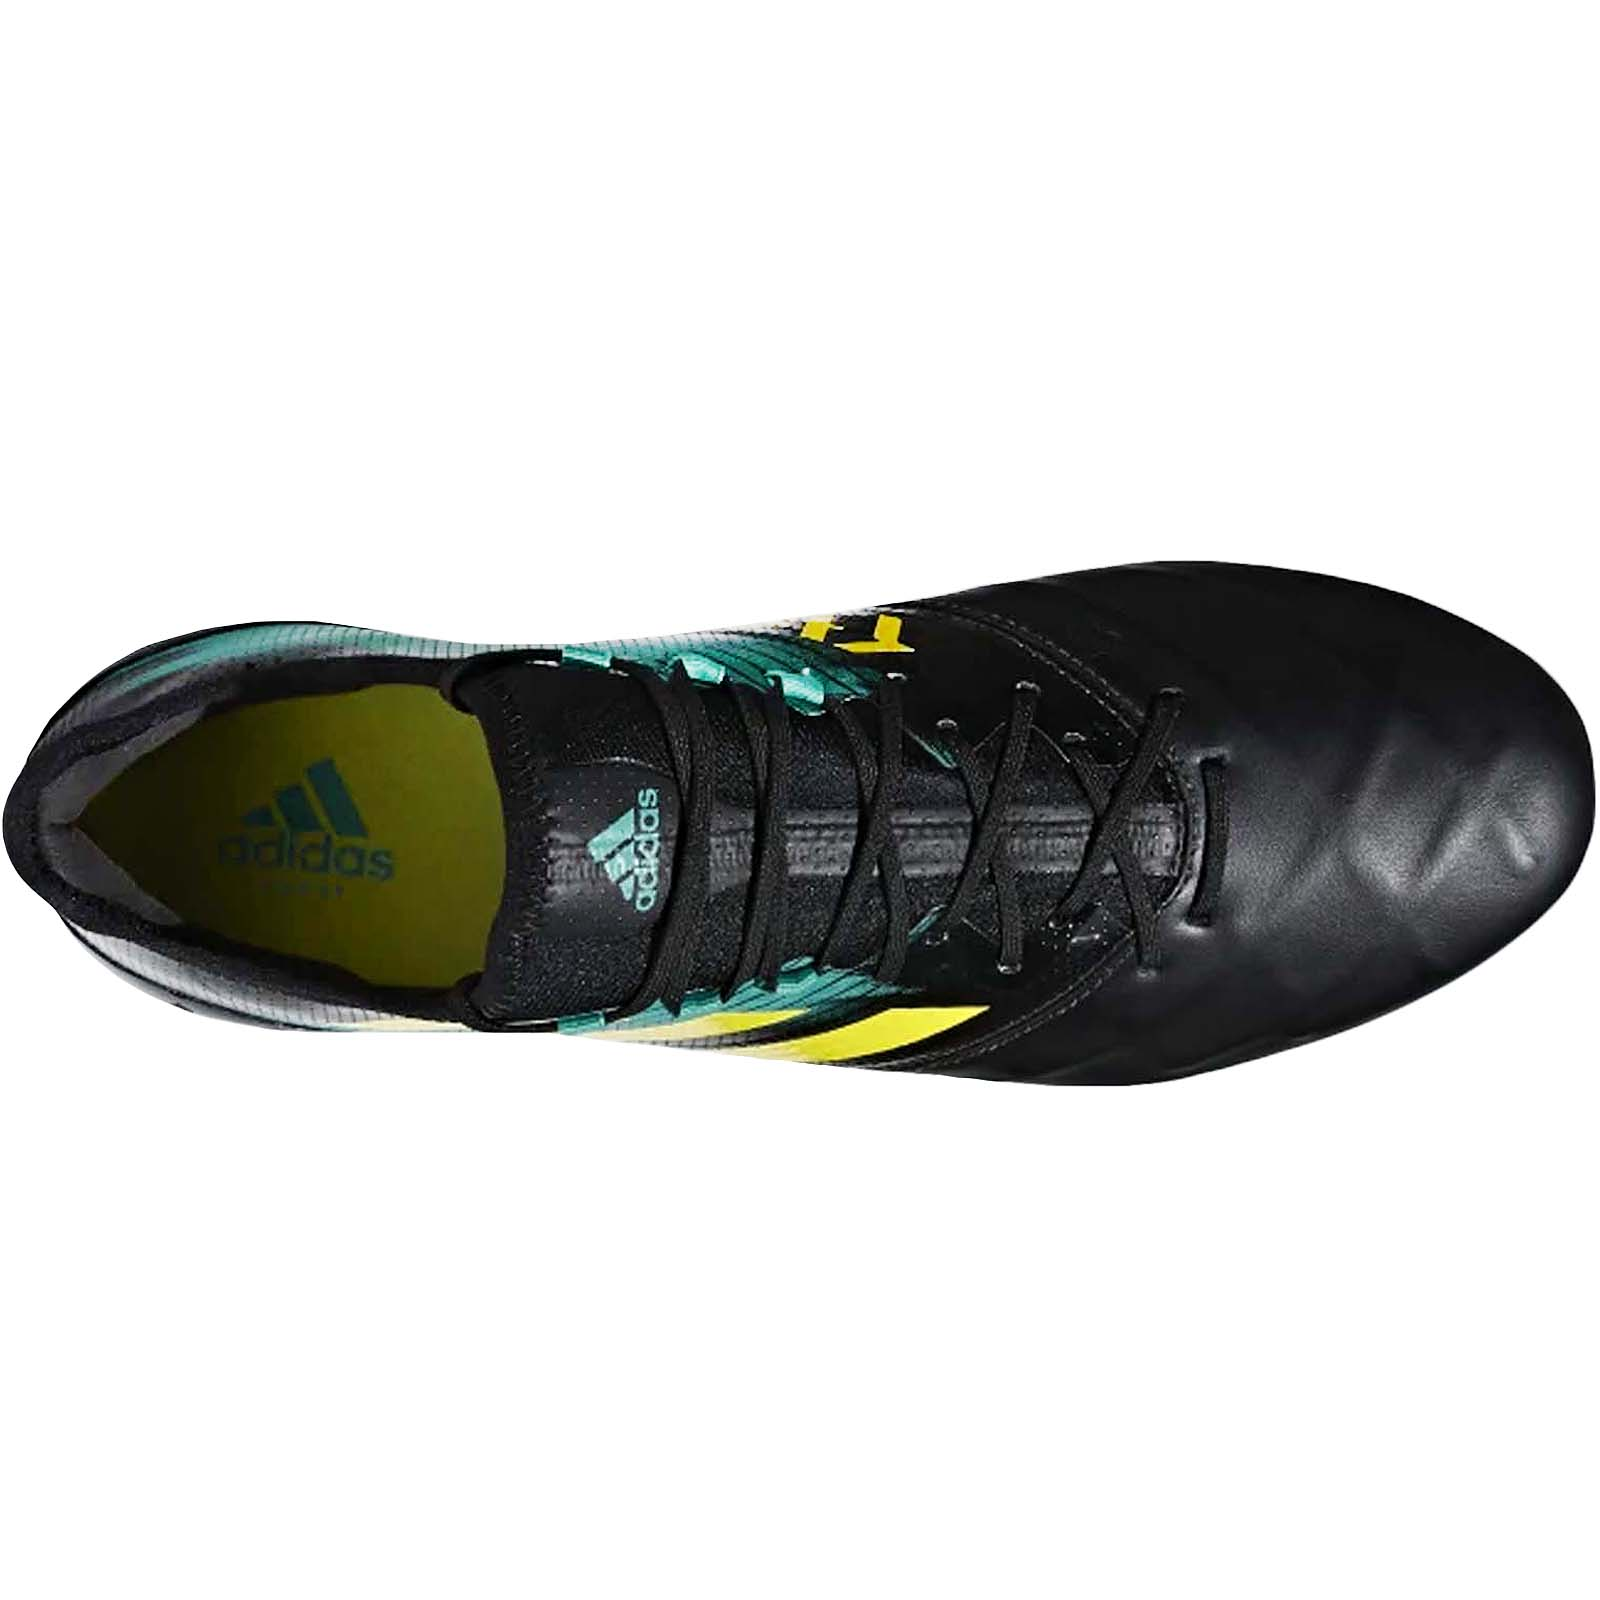 adidas-Performance-Mens-Kakari-Light-Soft-Ground-Rugby-Training-Shoes-Boots thumbnail 7